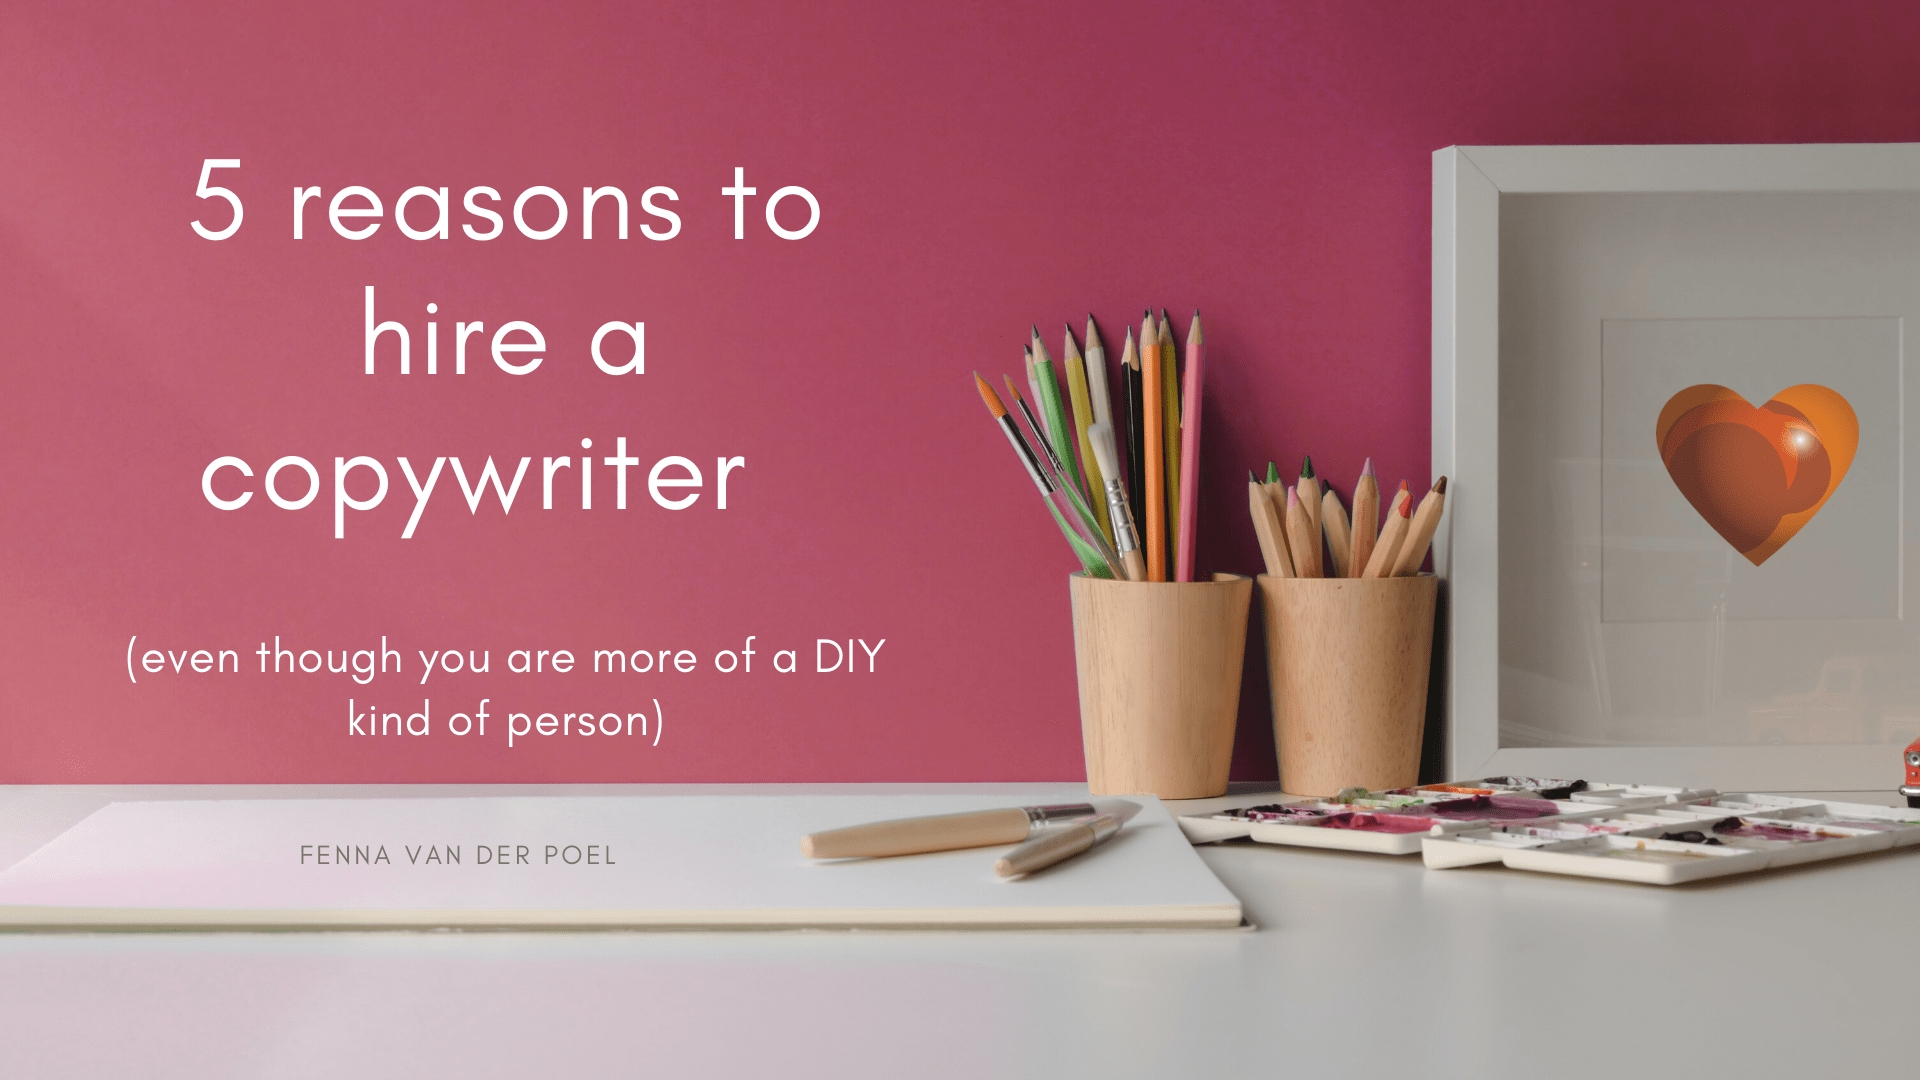 5 reasons to hire a copywriter (even though you're more of a DIY kind of person)